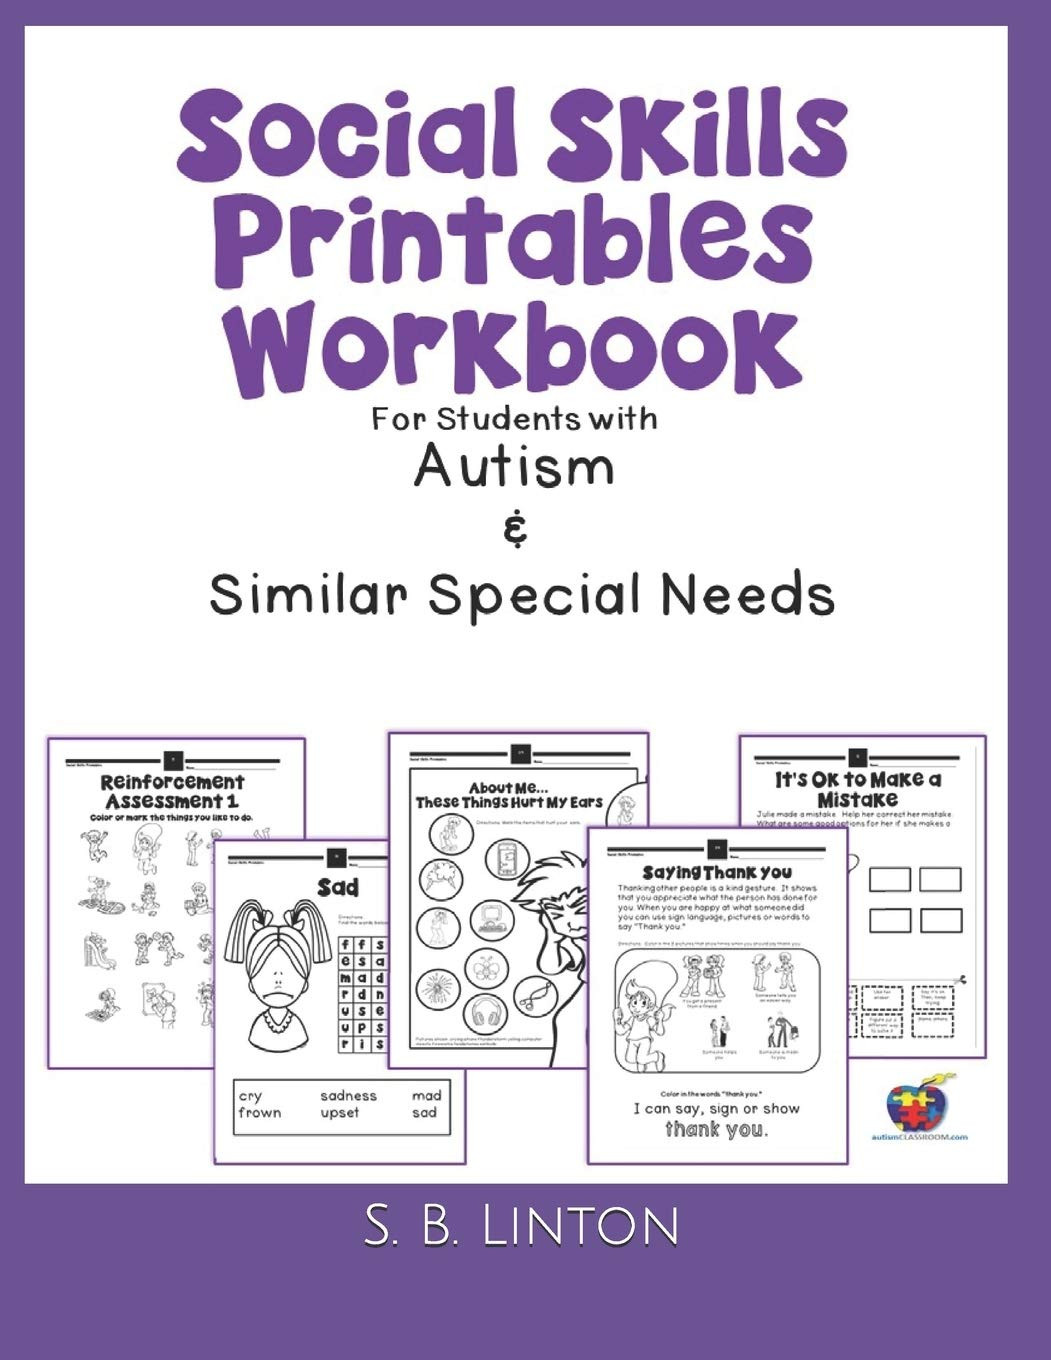 Daily Life Skills Worksheets social Skills Printables Workbook for Students with Autism